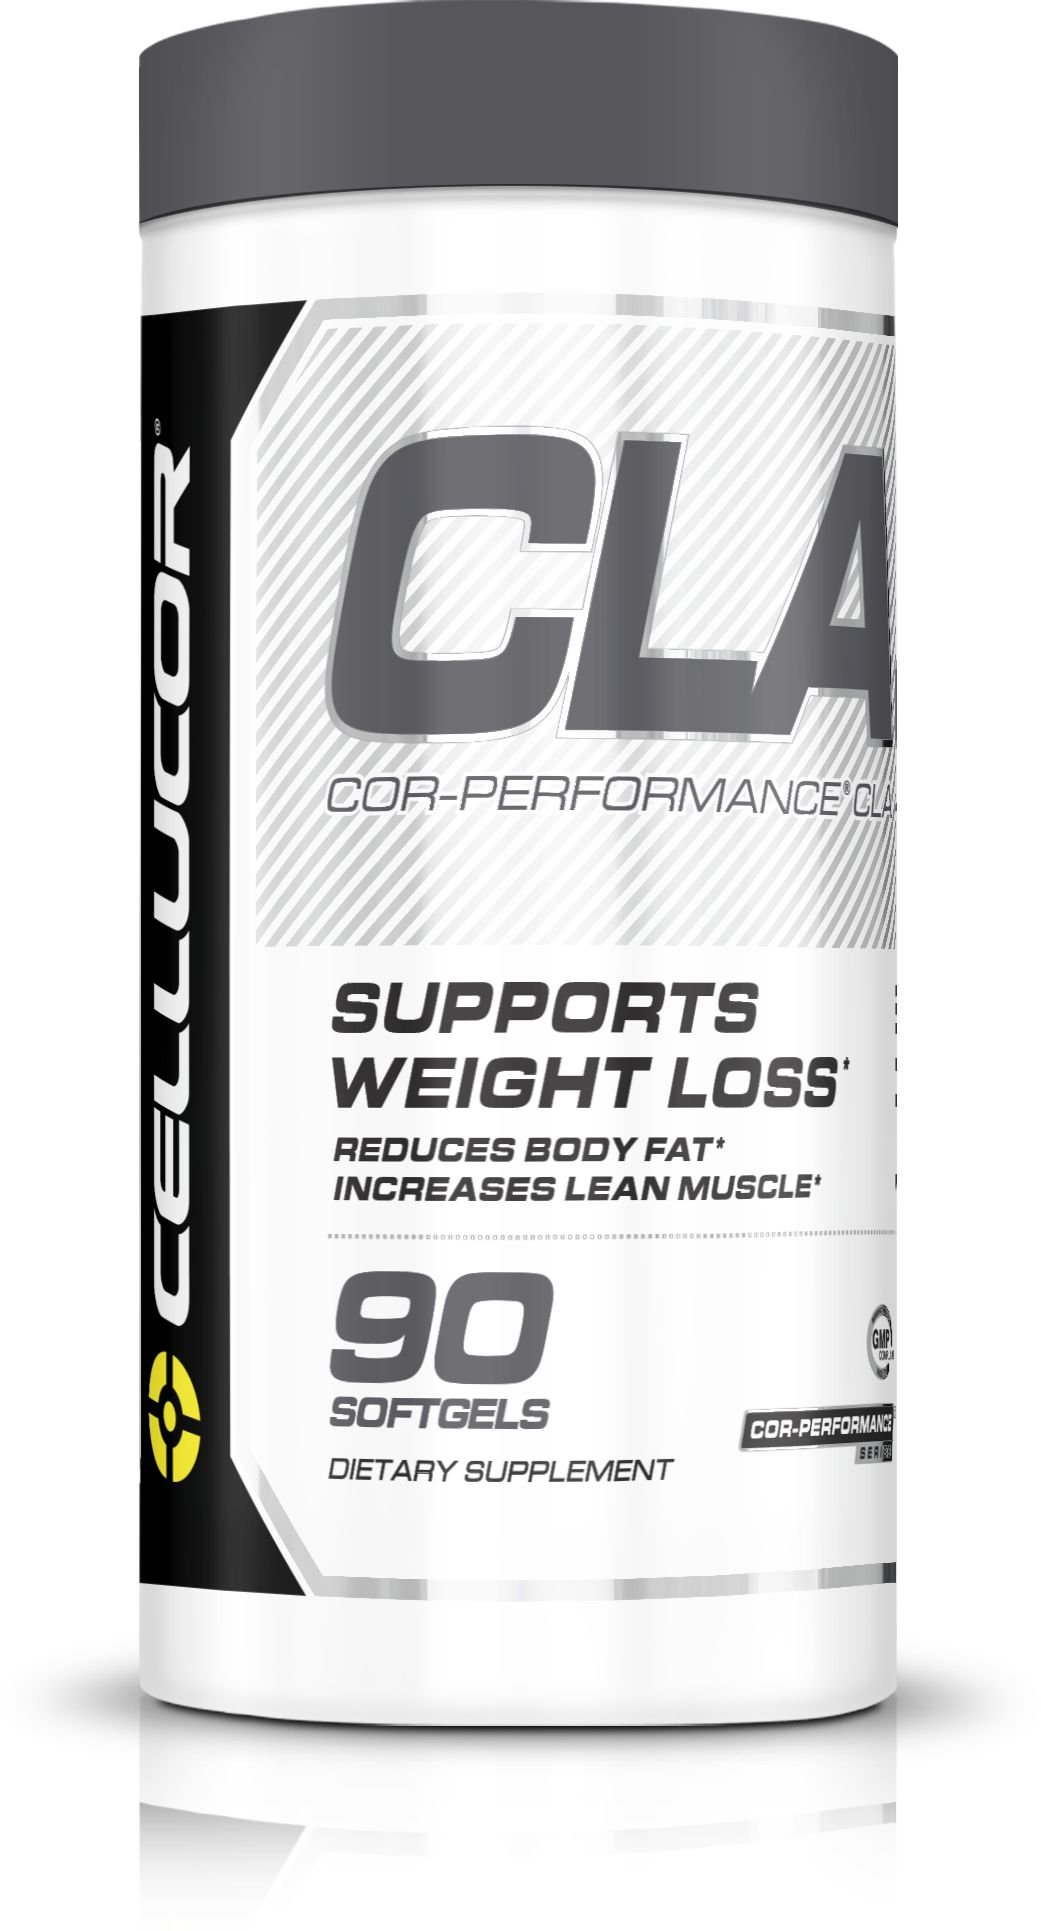 Cellucor CLA Weight Loss Supplement, Conjugated Linoleic Acid, COR-Performance Series, 90 Softgels